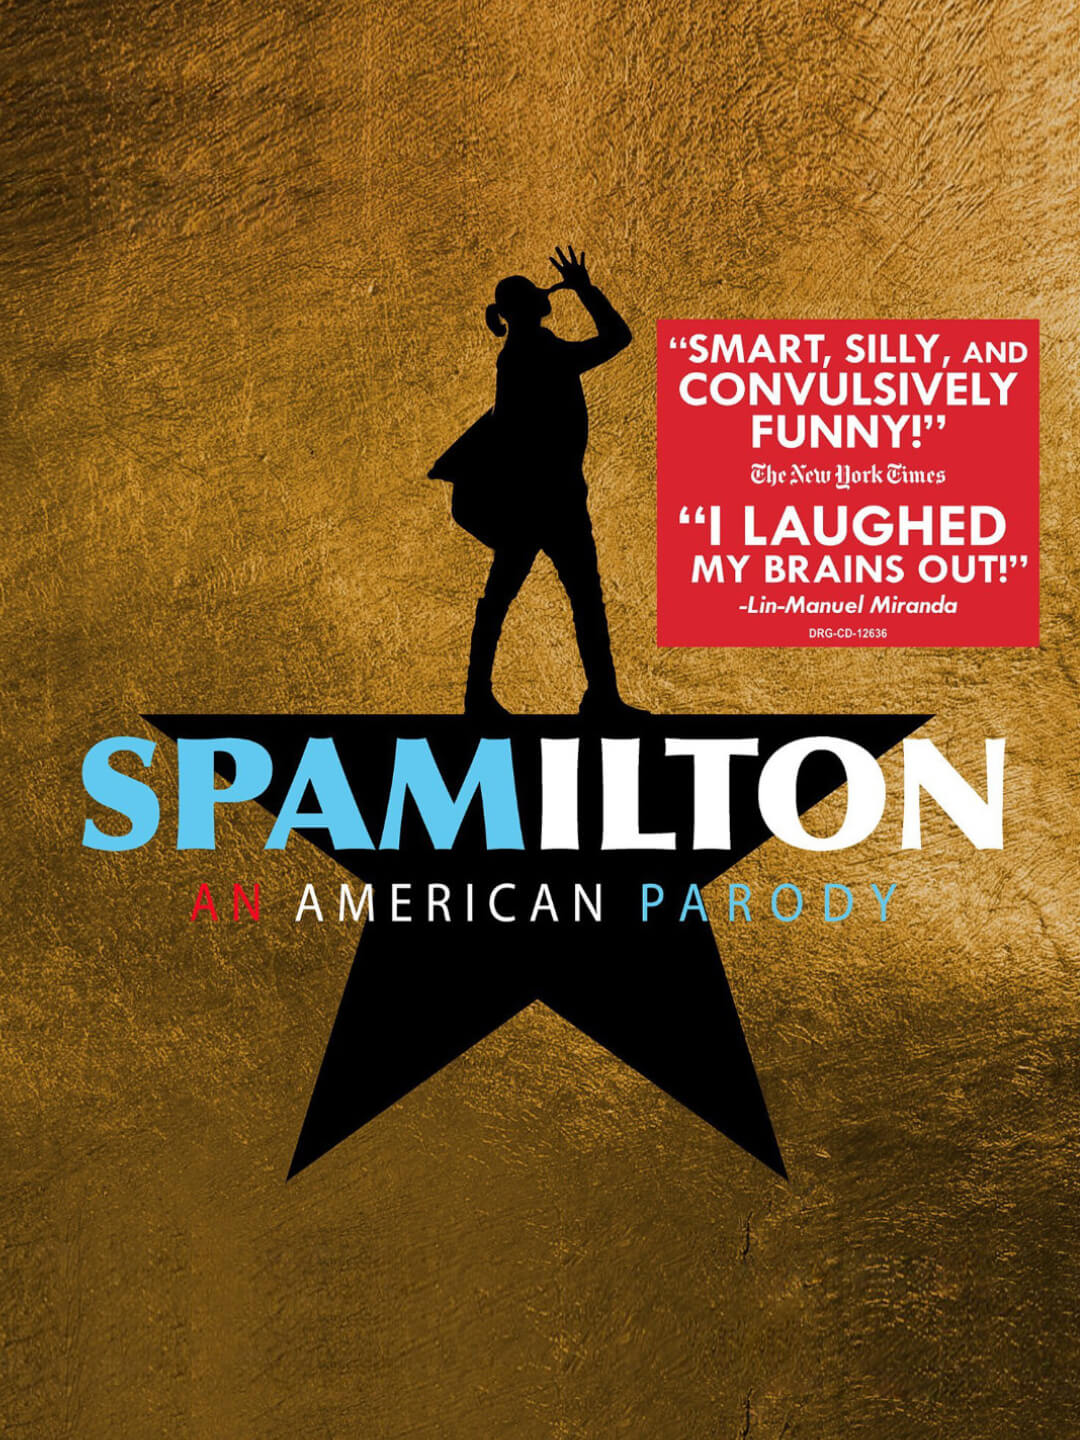 Fred Barton is the Musical Supervisor of SPAMILTON, the hit musical take-off on HAMILTON - He served as Arranger, Vocal Arranger, Pianist, Performer, and Musical Director of the long-run Off-Broadway production, the CD for DRG Records. Fred subsequently arranged and music-directed the Chicago, Los Angeles, and London companies, and currently supervises the National Tour, booked into 2020. The Pittsburgh Civic Light Opera production is in preparation for a May 2019 opening.SPAMILTON marks the reunion of Fred and writer-lyricist Gerard Alessandrini, who collaborated on the original FORBIDDEN BROADWAY in 1981 – a show that ran for over 27 years Off-Broadway, topping its countless awards with a Special Tony Award.